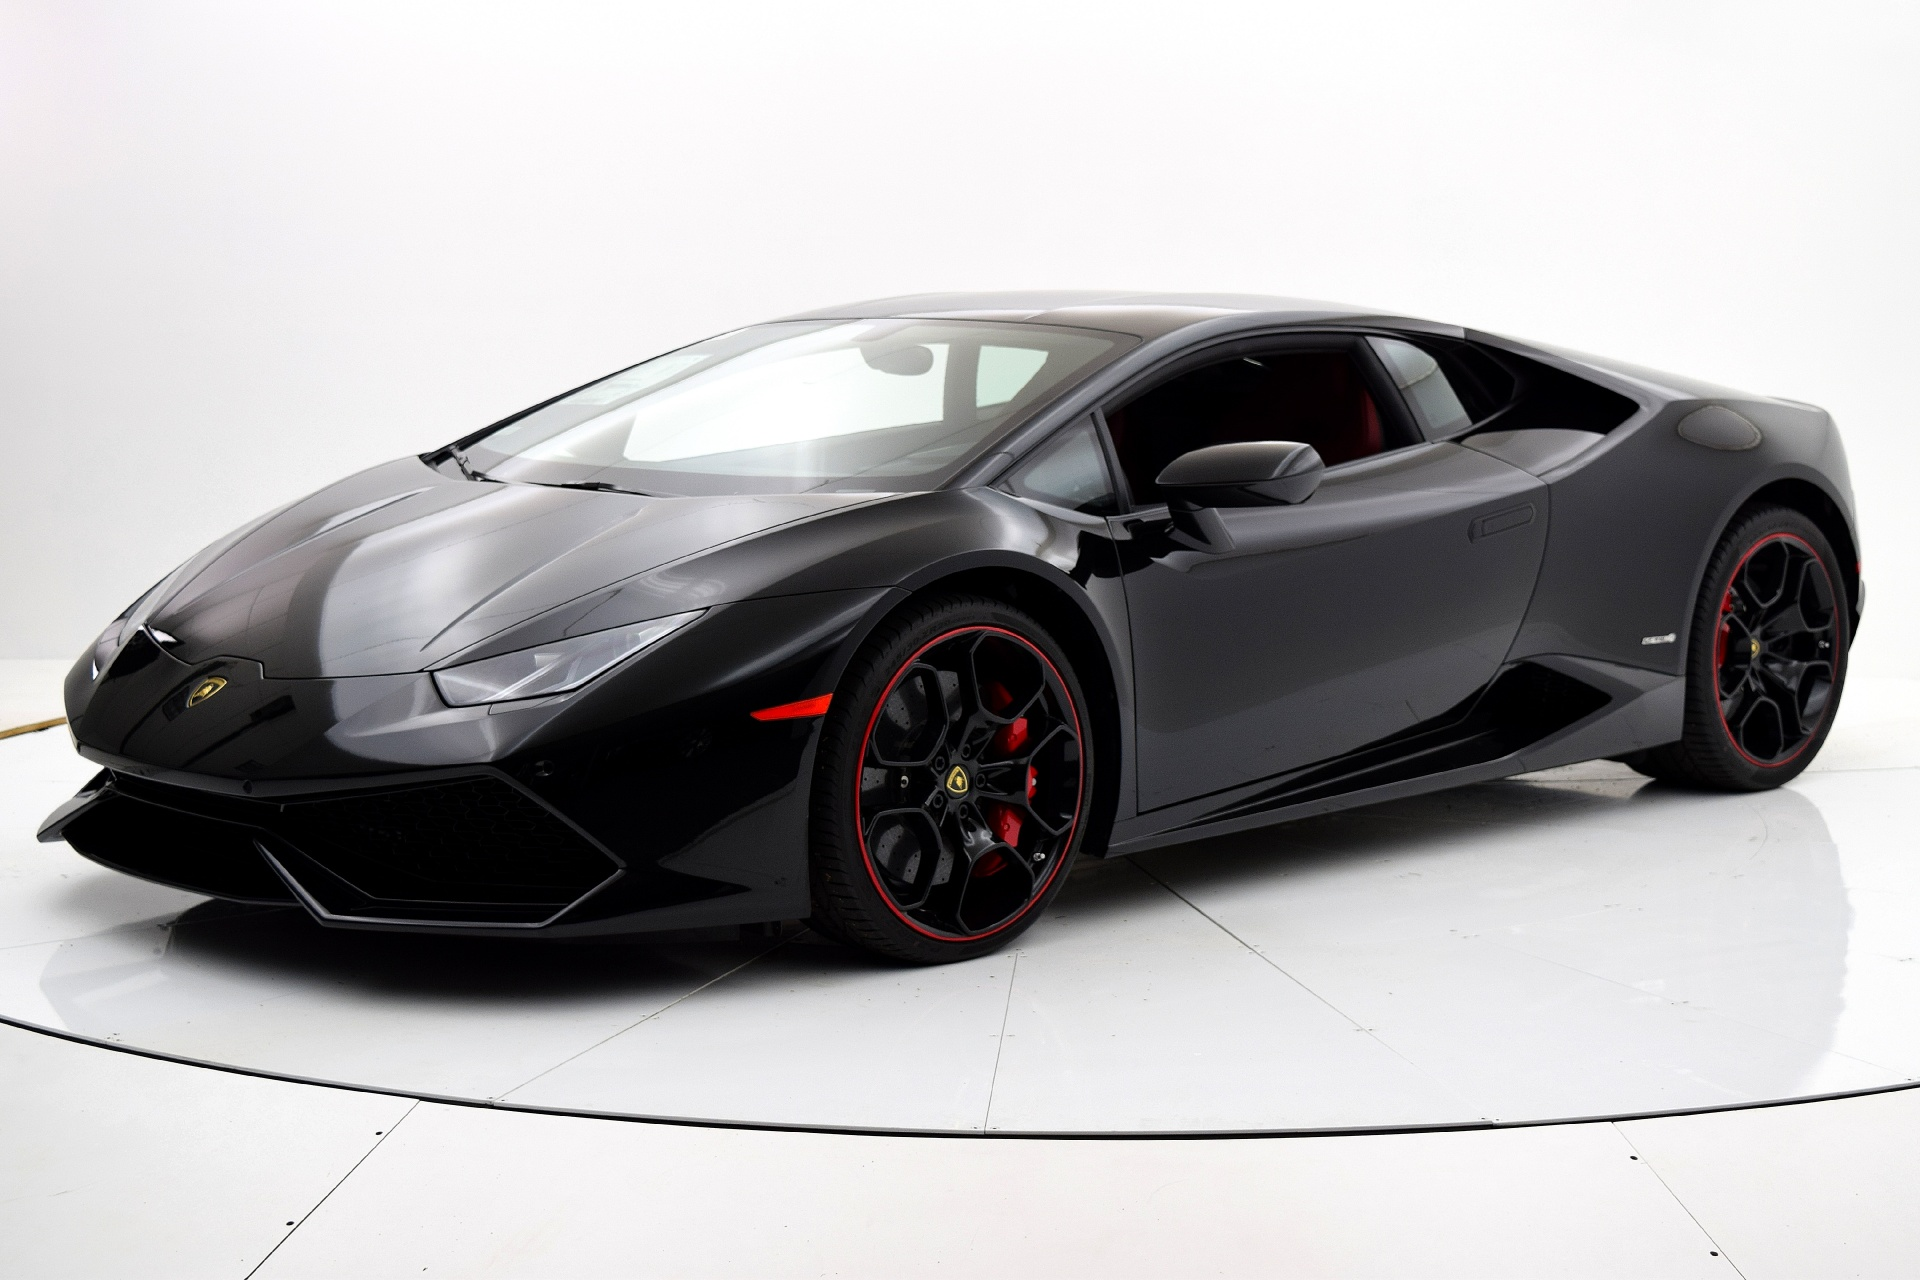 2016 lamborghini huracan lp 610 4 coupe. Black Bedroom Furniture Sets. Home Design Ideas